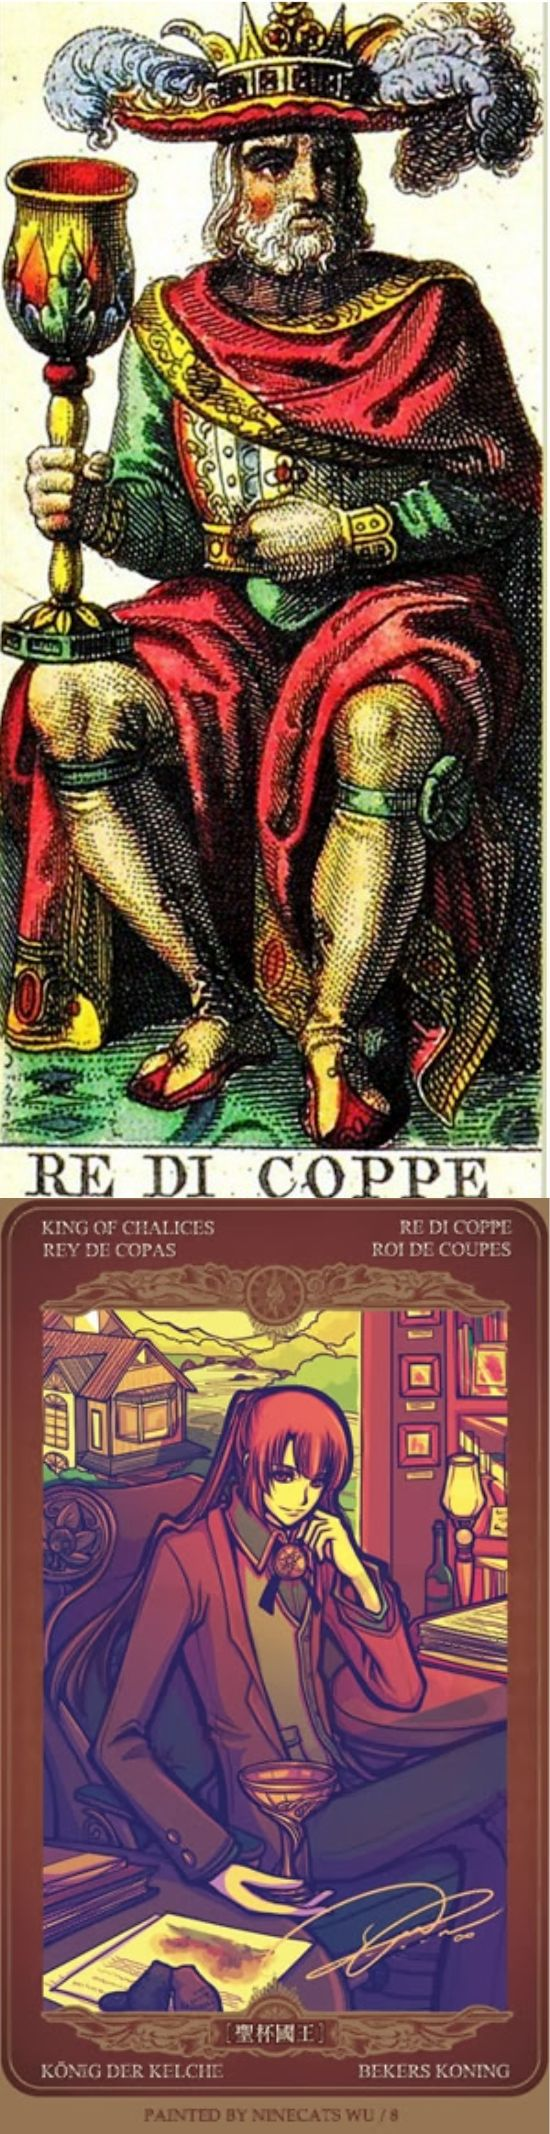 King of Cups: compassionate and a master of emotions with selfish intentions (reverse). Sofani Tarot deck and Oze 69 Watchers Tarot deck: tarot reading, free daily tarot and tarot cards on line. Best 2017 psychic reading sign and tarot deck blessing. #tarotart #witchy #application #pods #happyhalloween #swords